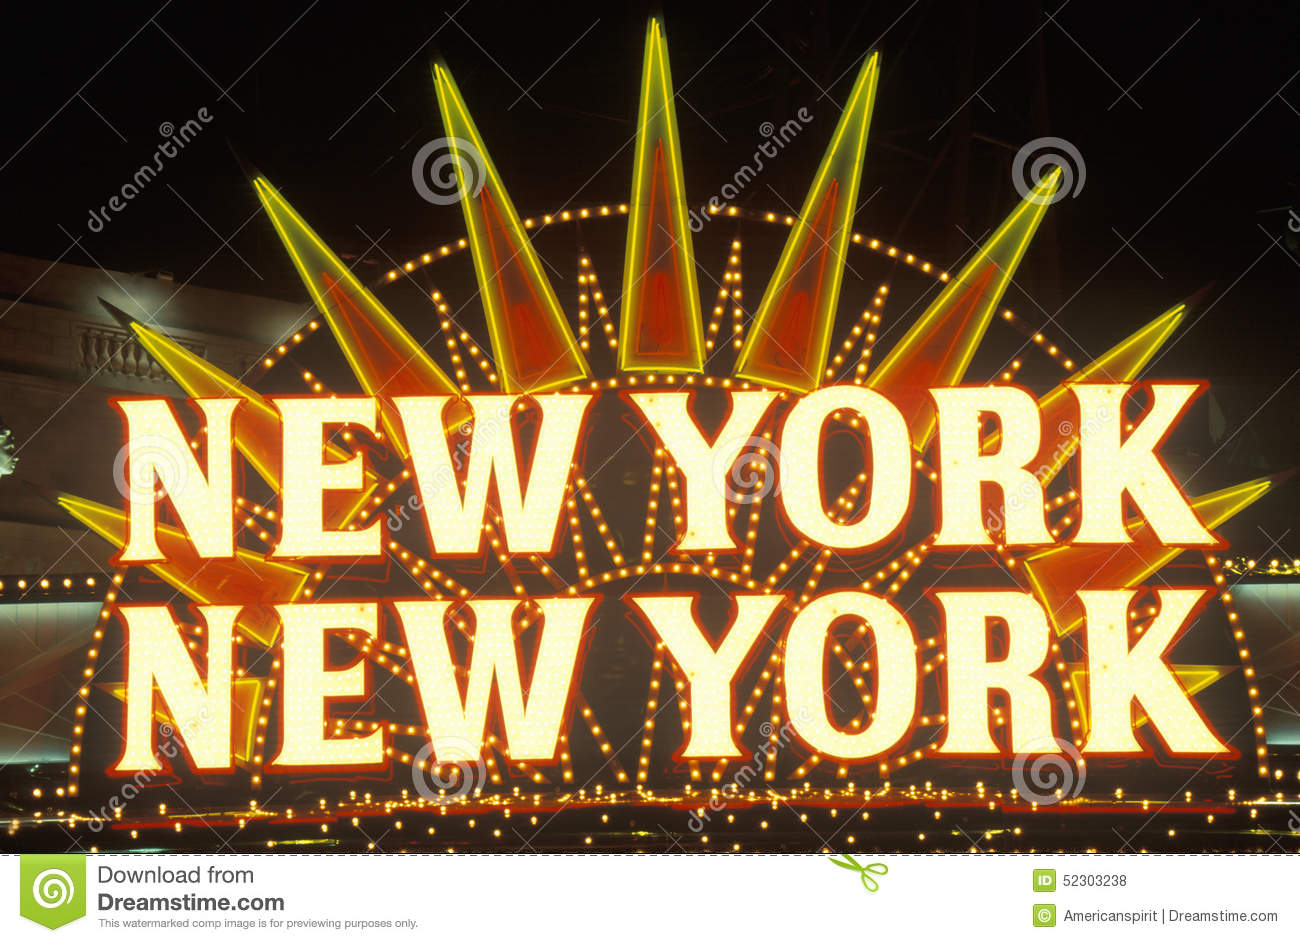 A neon sign that reads �New York, New York� at the hotel and casino in Las Vegas, Nevada